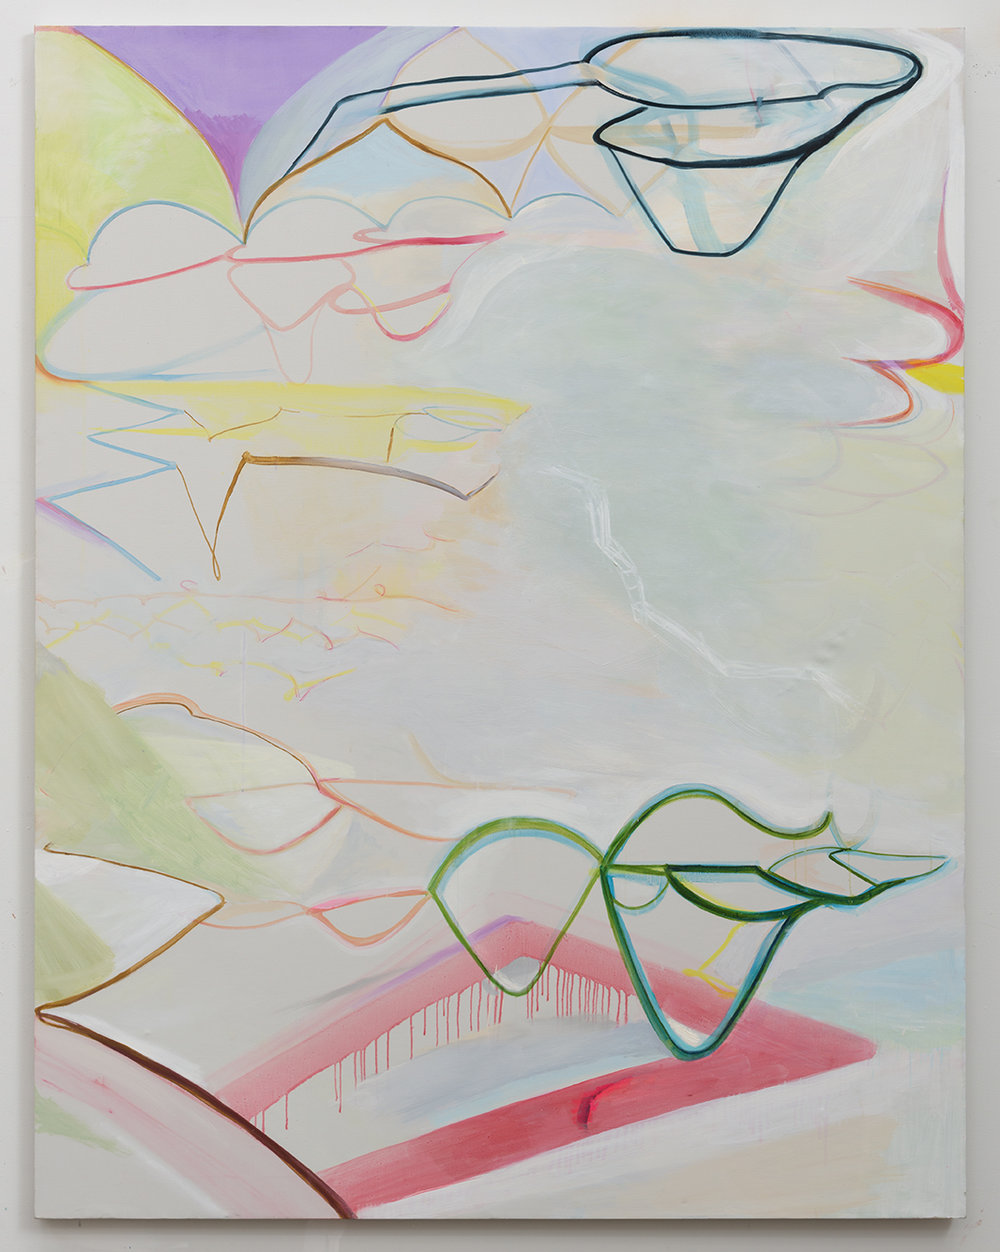 Rebeca Puga  Reconfigurations , 2016 Oil on canvas 72 x 56 inches